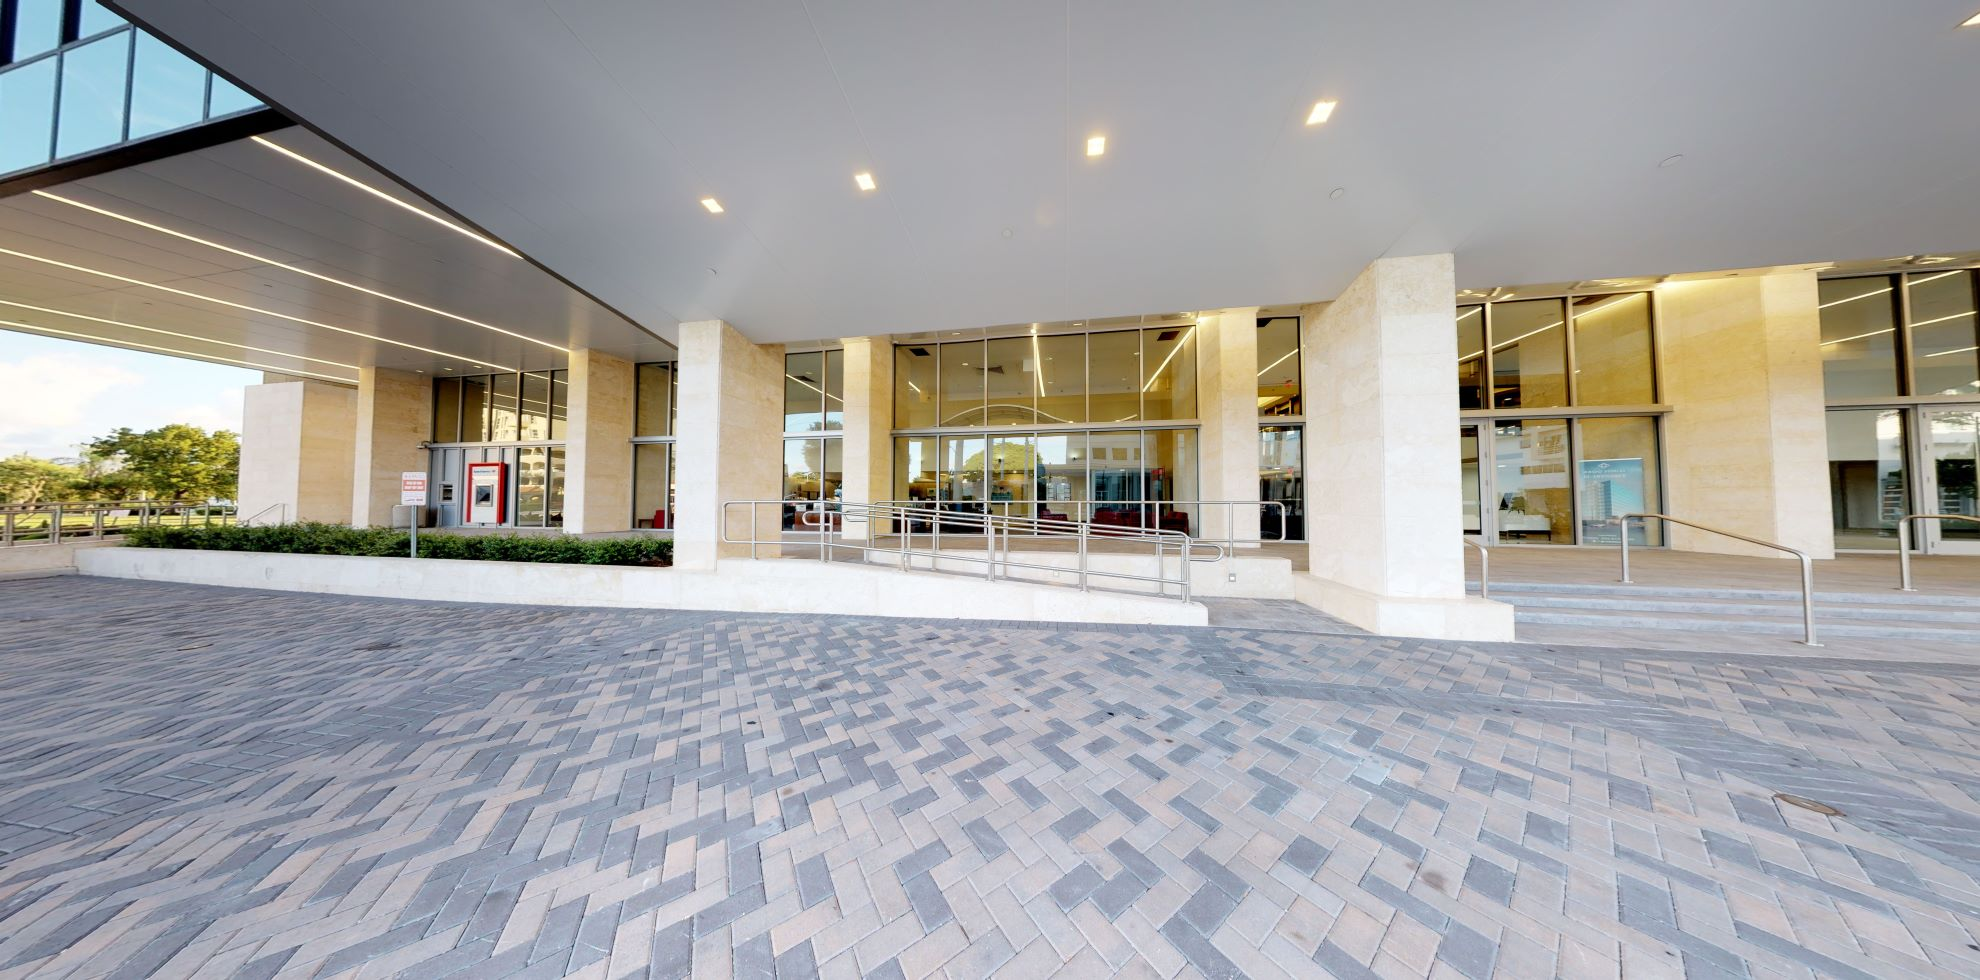 Bank of America financial center with drive-thru ATM | 2600 S Douglas Rd STE 100, Coral Gables, FL 33134